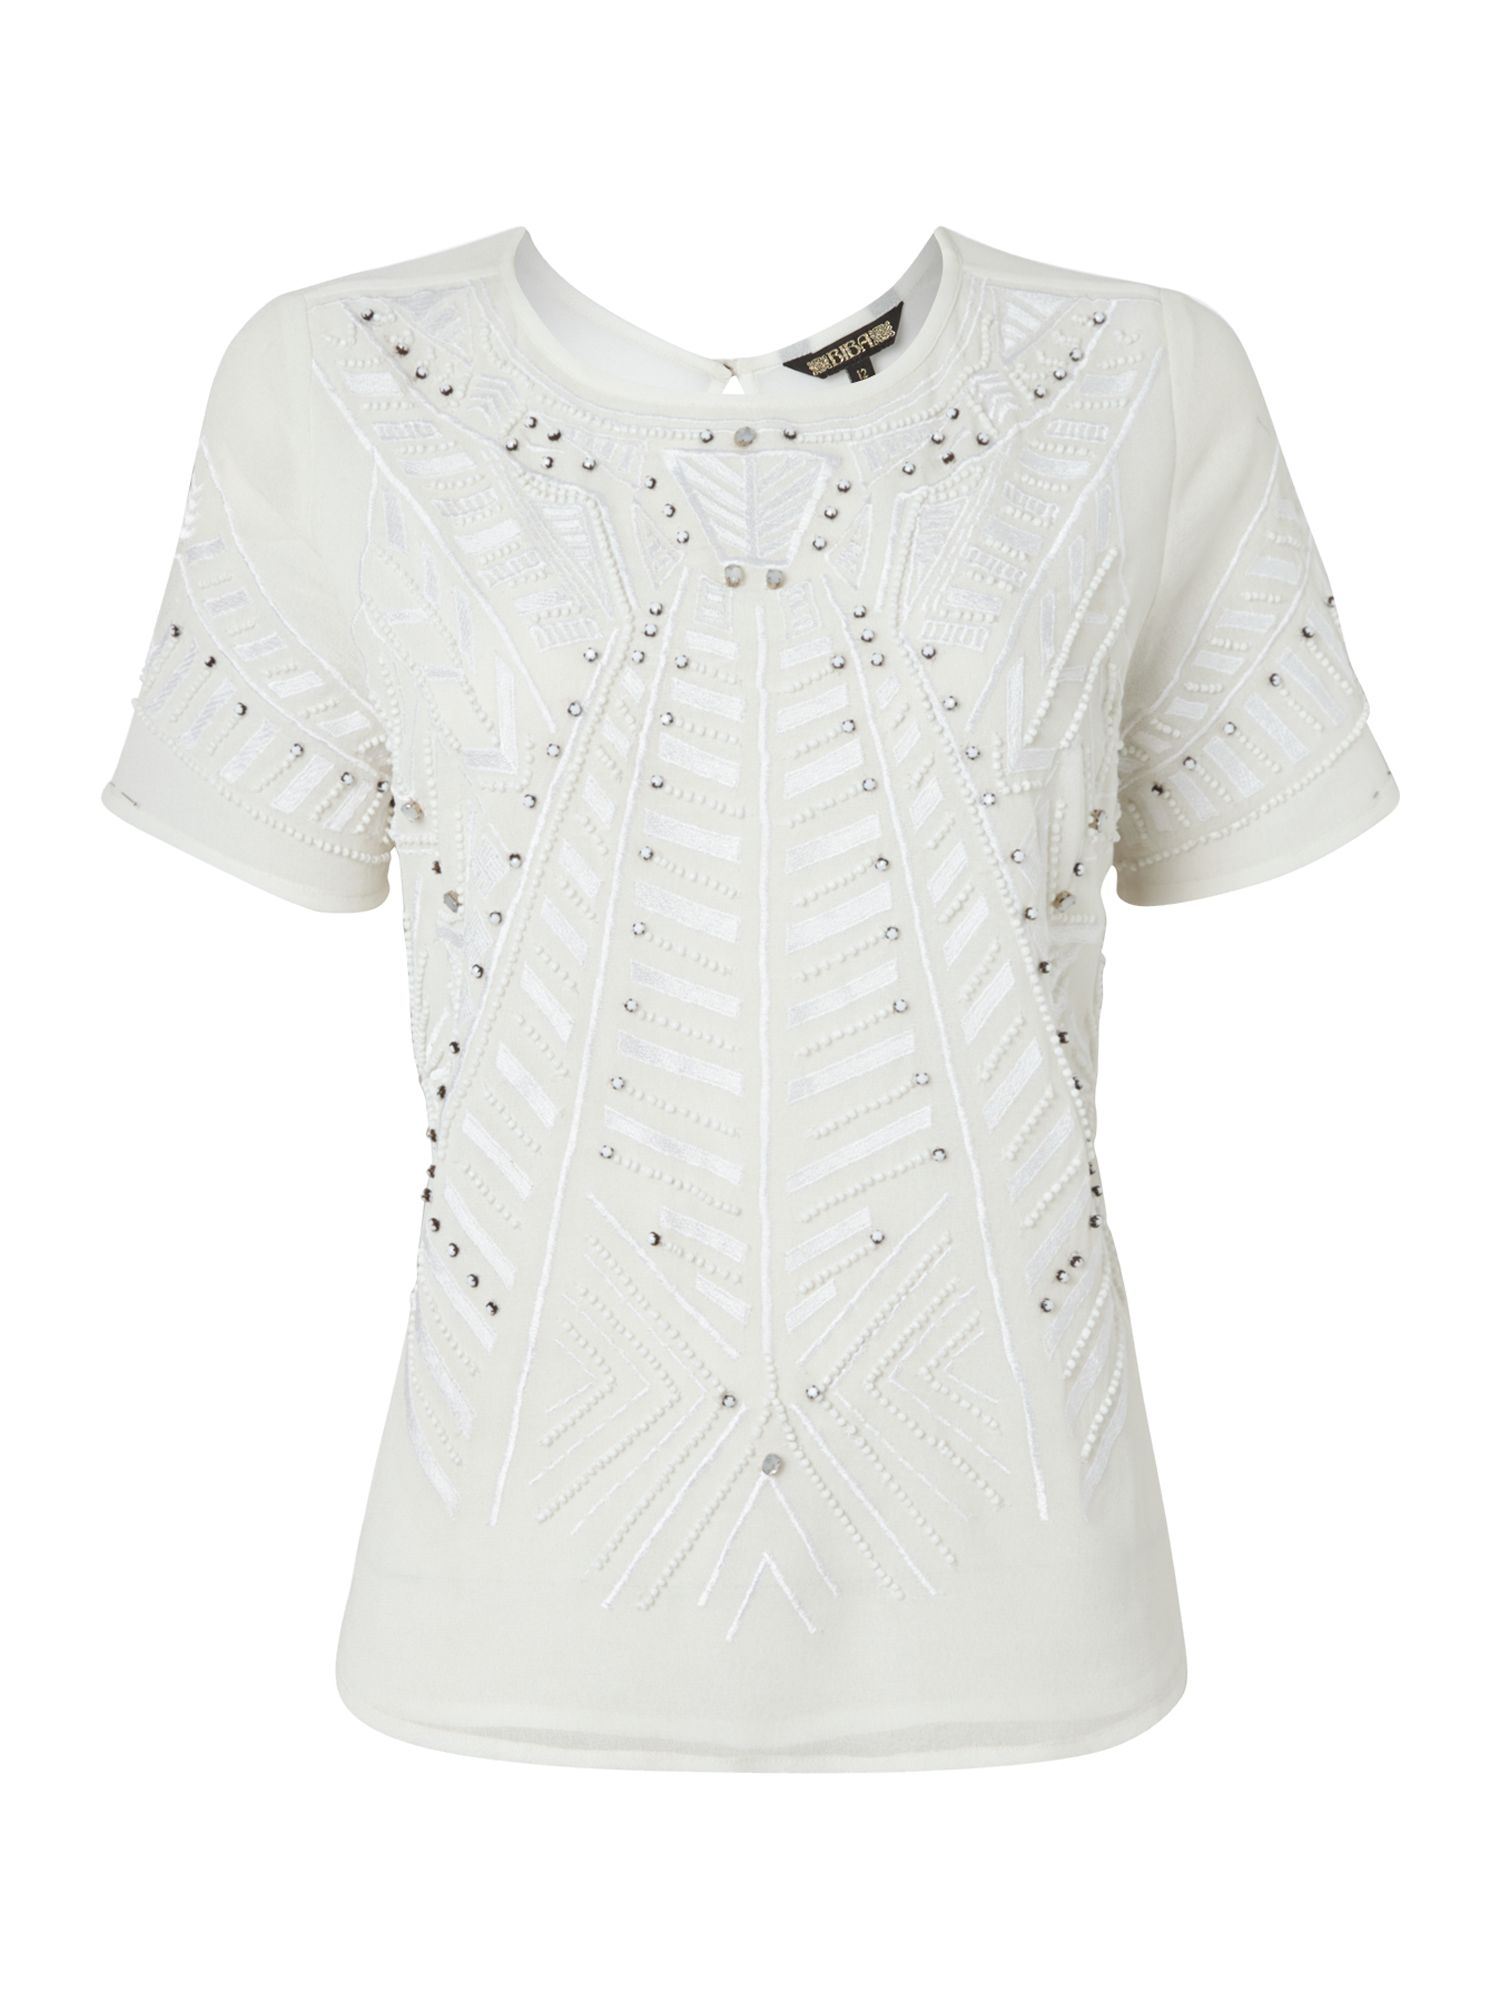 Harper beaded and embroidered Blouse